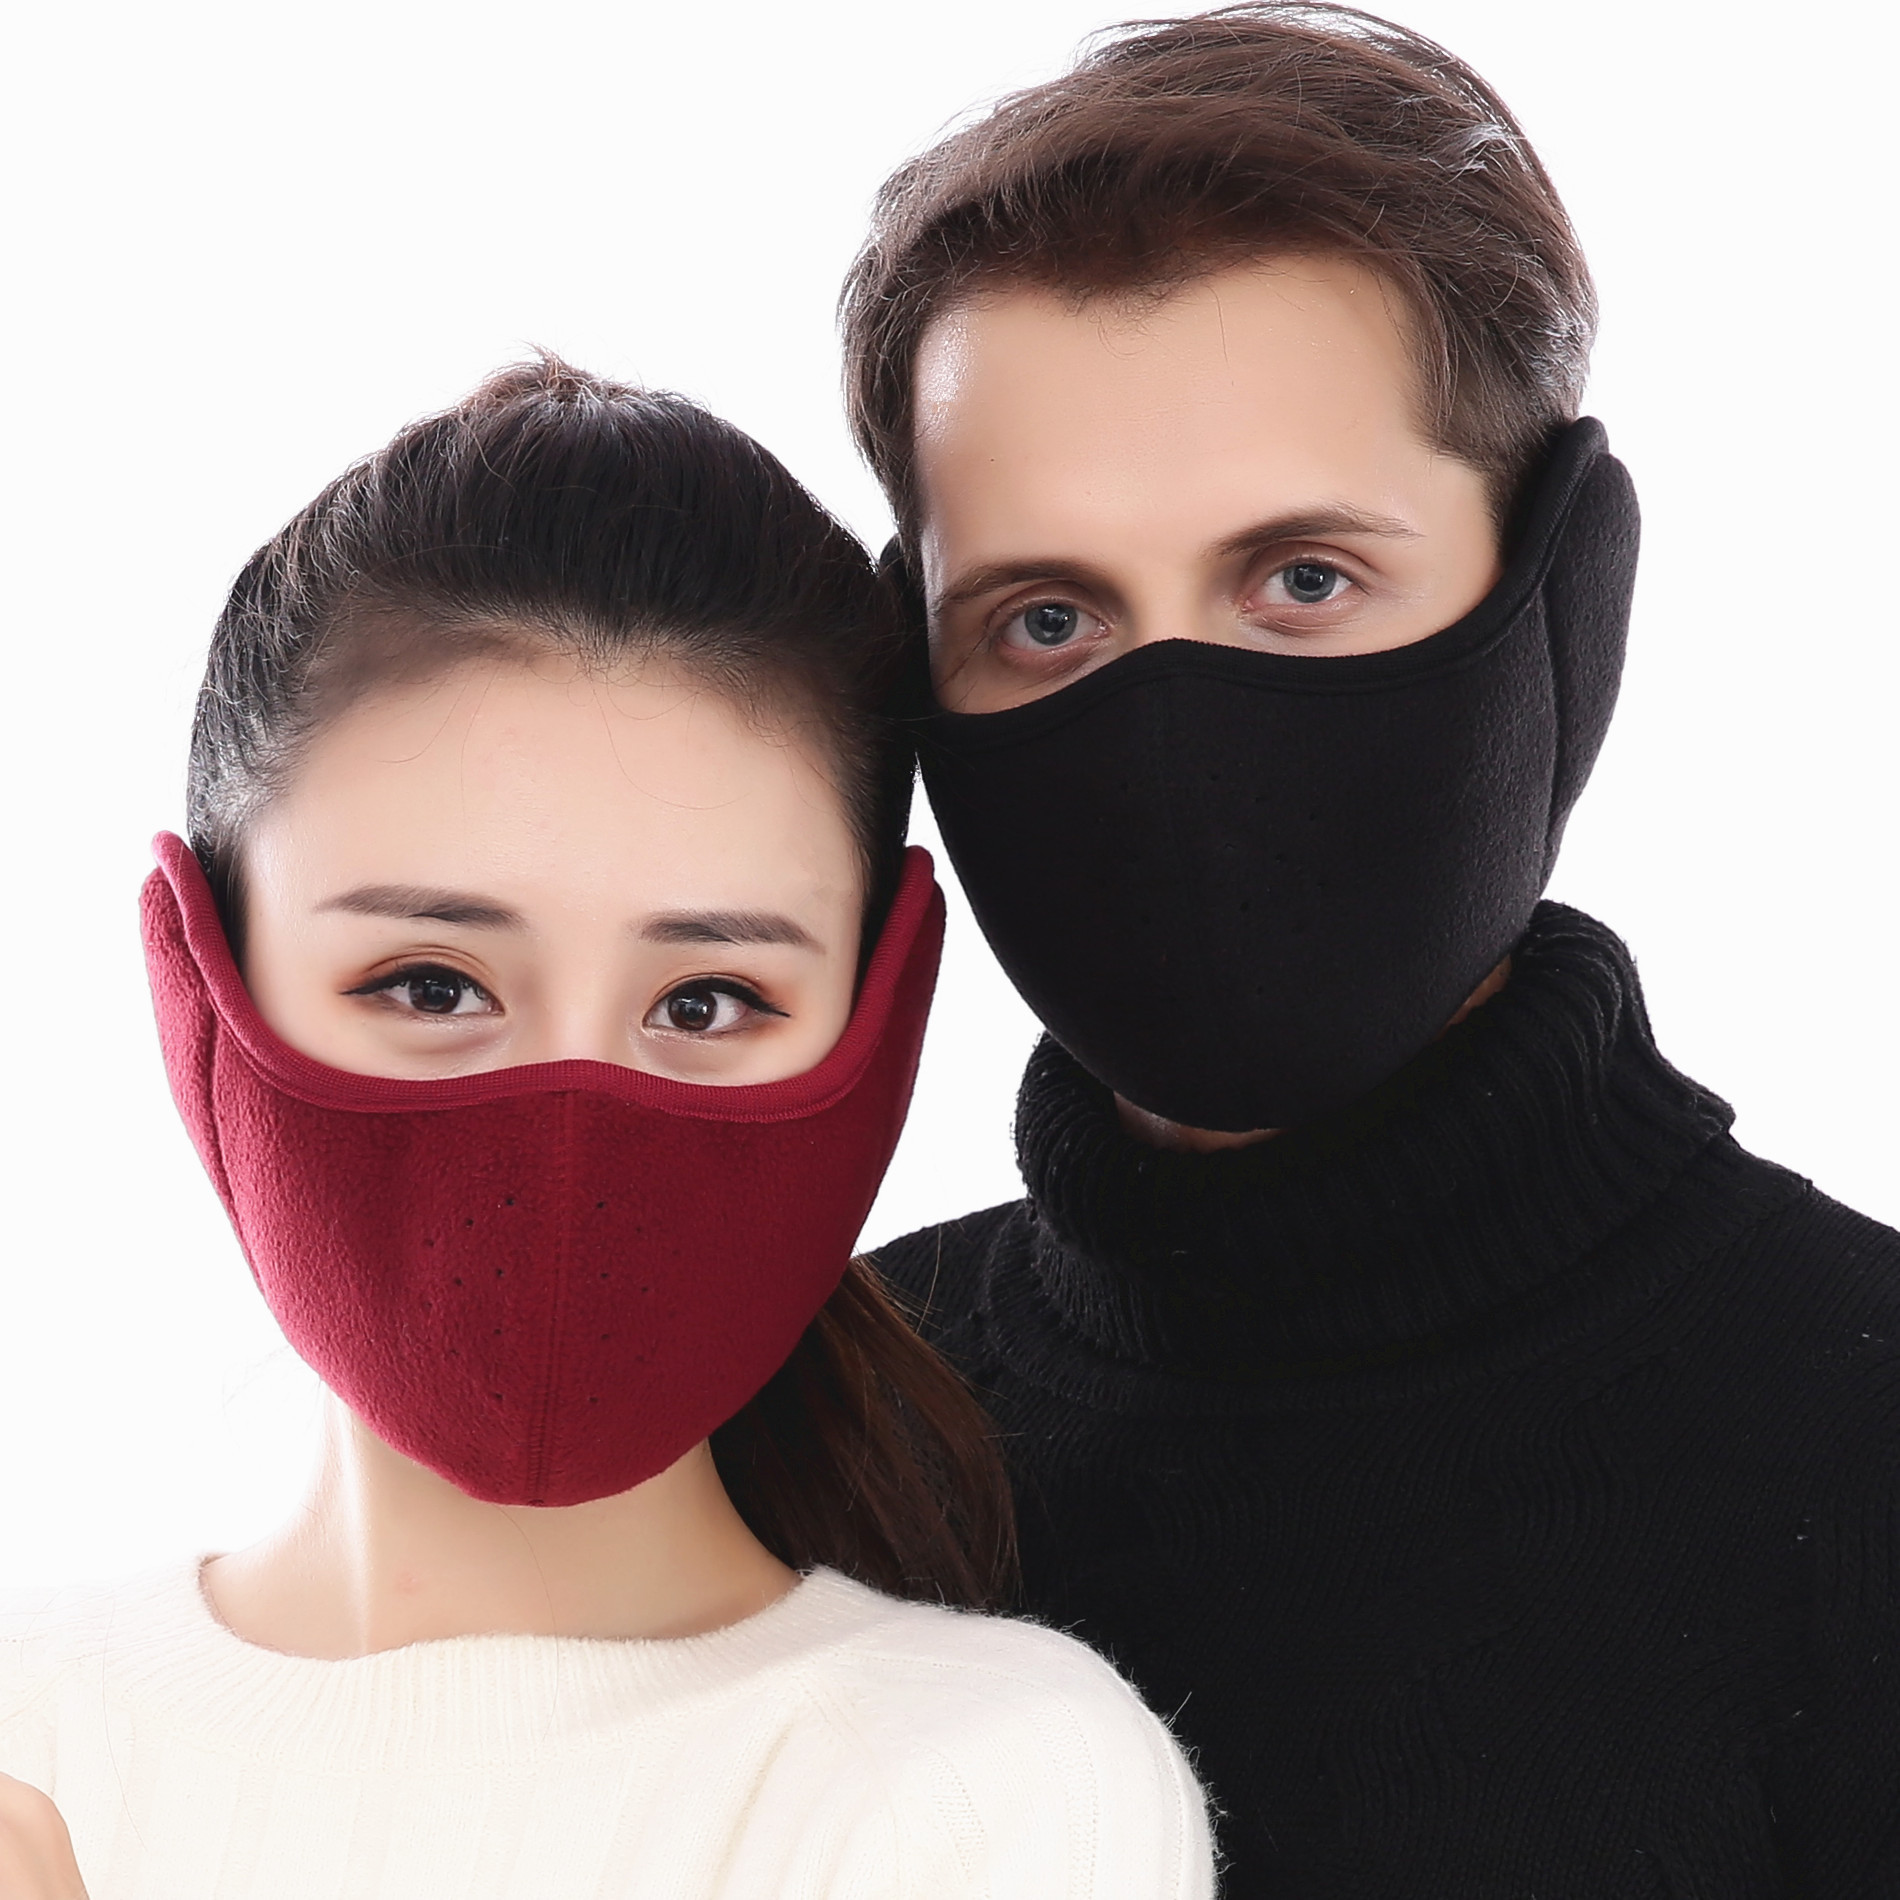 Cycling Masks Ear Protect Windproof Winter Unisex Breathable Mask Ski Sports Outdoor Winter Guard Warm Mask